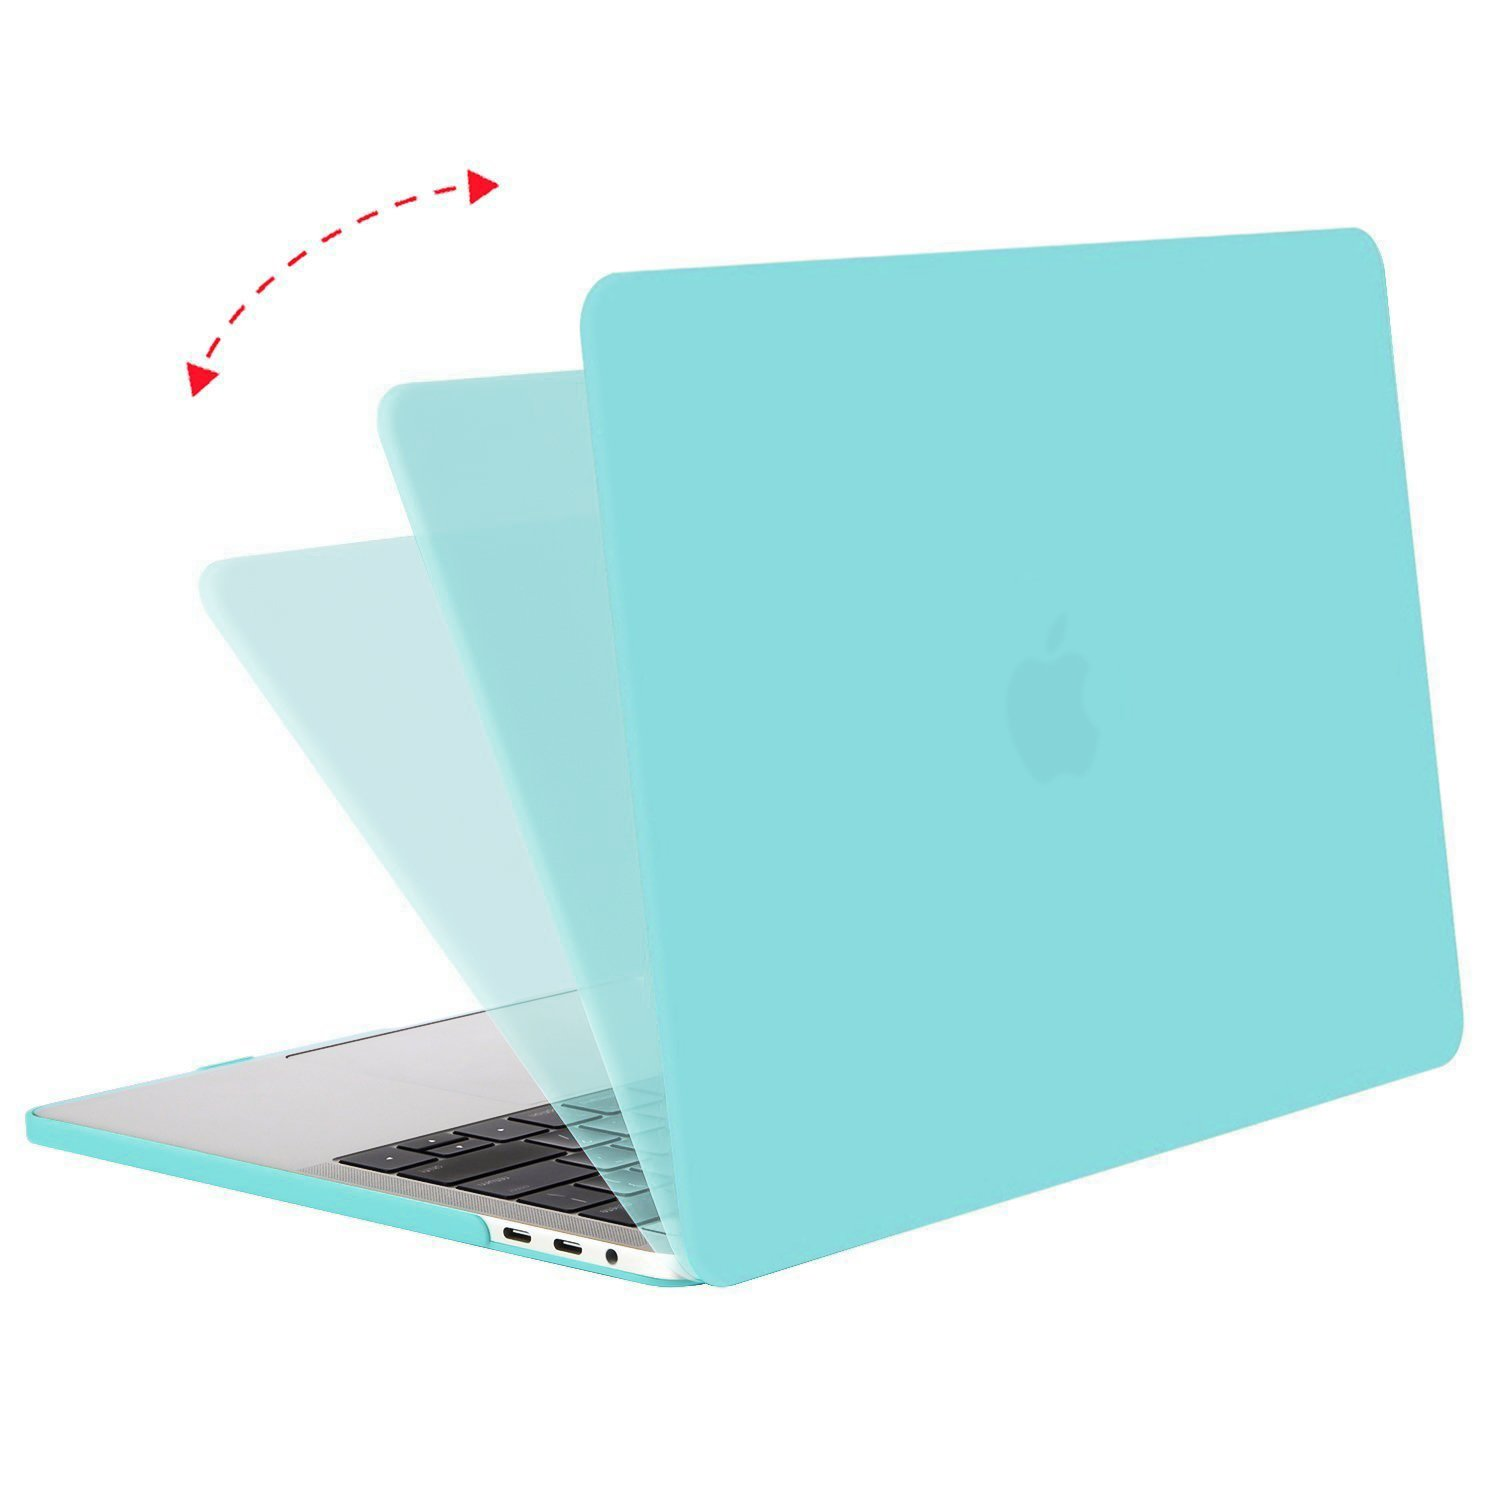 Mosiso MacBook Pro 15 Case 2018 2017 2016 Release A1990/A1707 , Plastic Hard Shell with Keyboard Cover with Screen Protector with Storage Bag for Newest MacBook Pro 15 Inch with Touch Bar, Crystal Clear